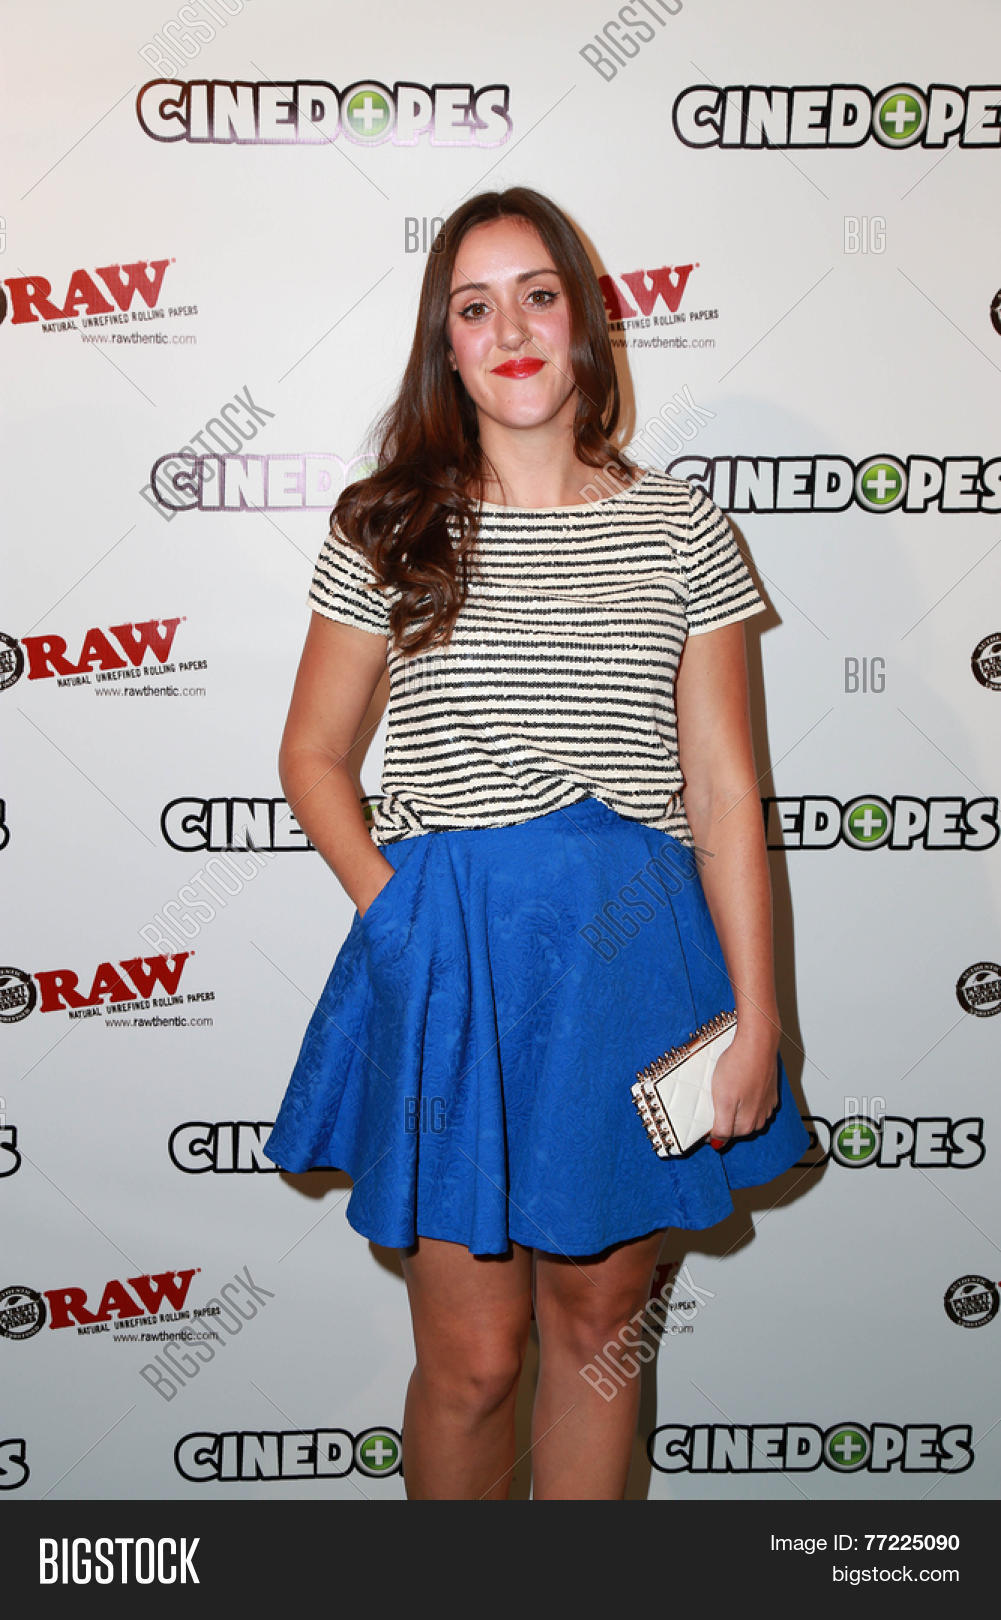 dfa277a643f LOS ANGELES - NOV 18: Jordan Mann at the CineDopes Web Series Premiere And  Launch